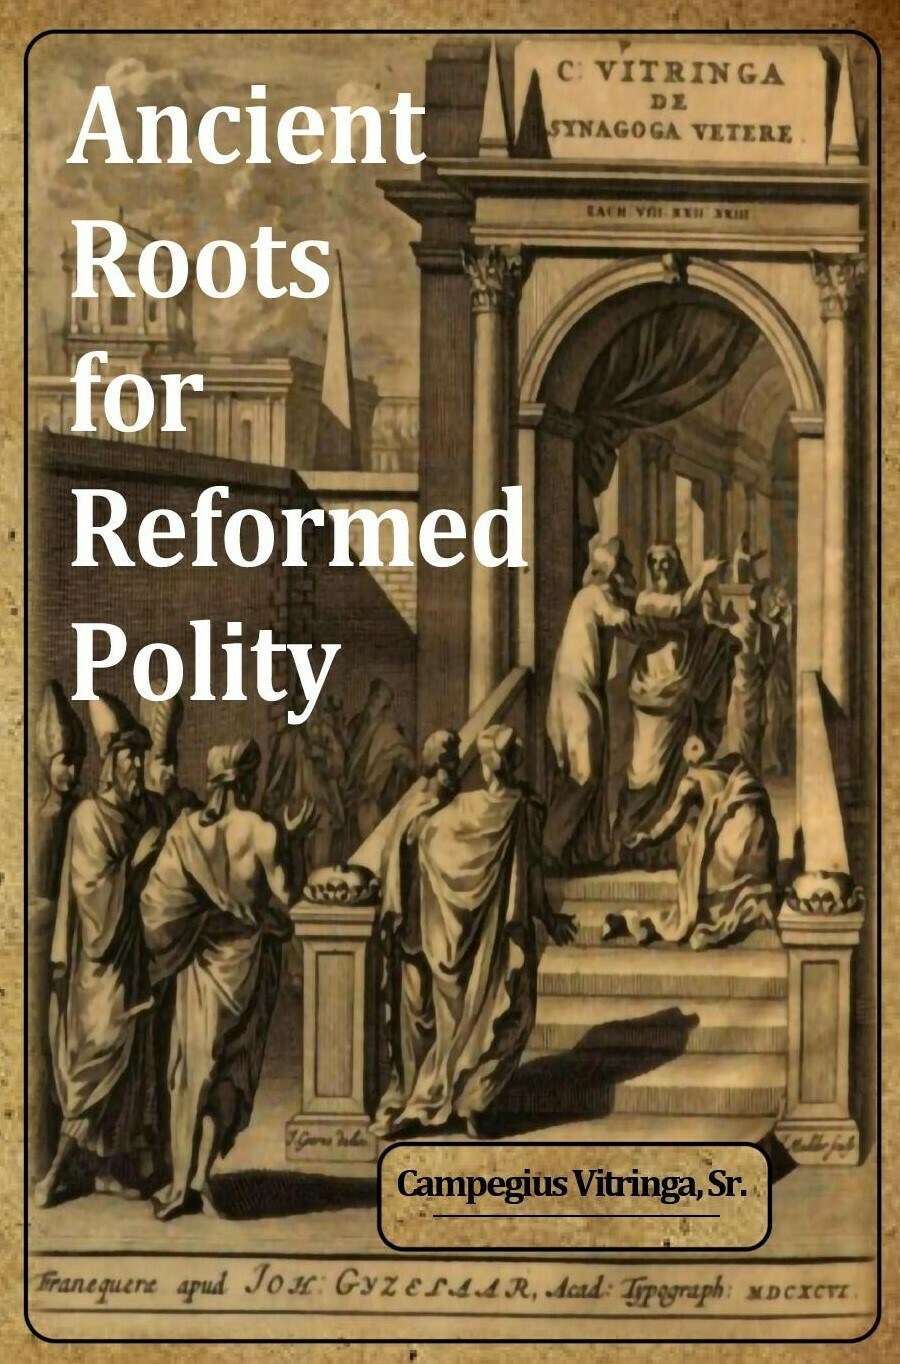 Ancient Roots for Reformed Polity: De Synagoga Vetere and the Ecclesiology of the Early Church - An Annotated Compendium by Campegius Vitringa, Sr.